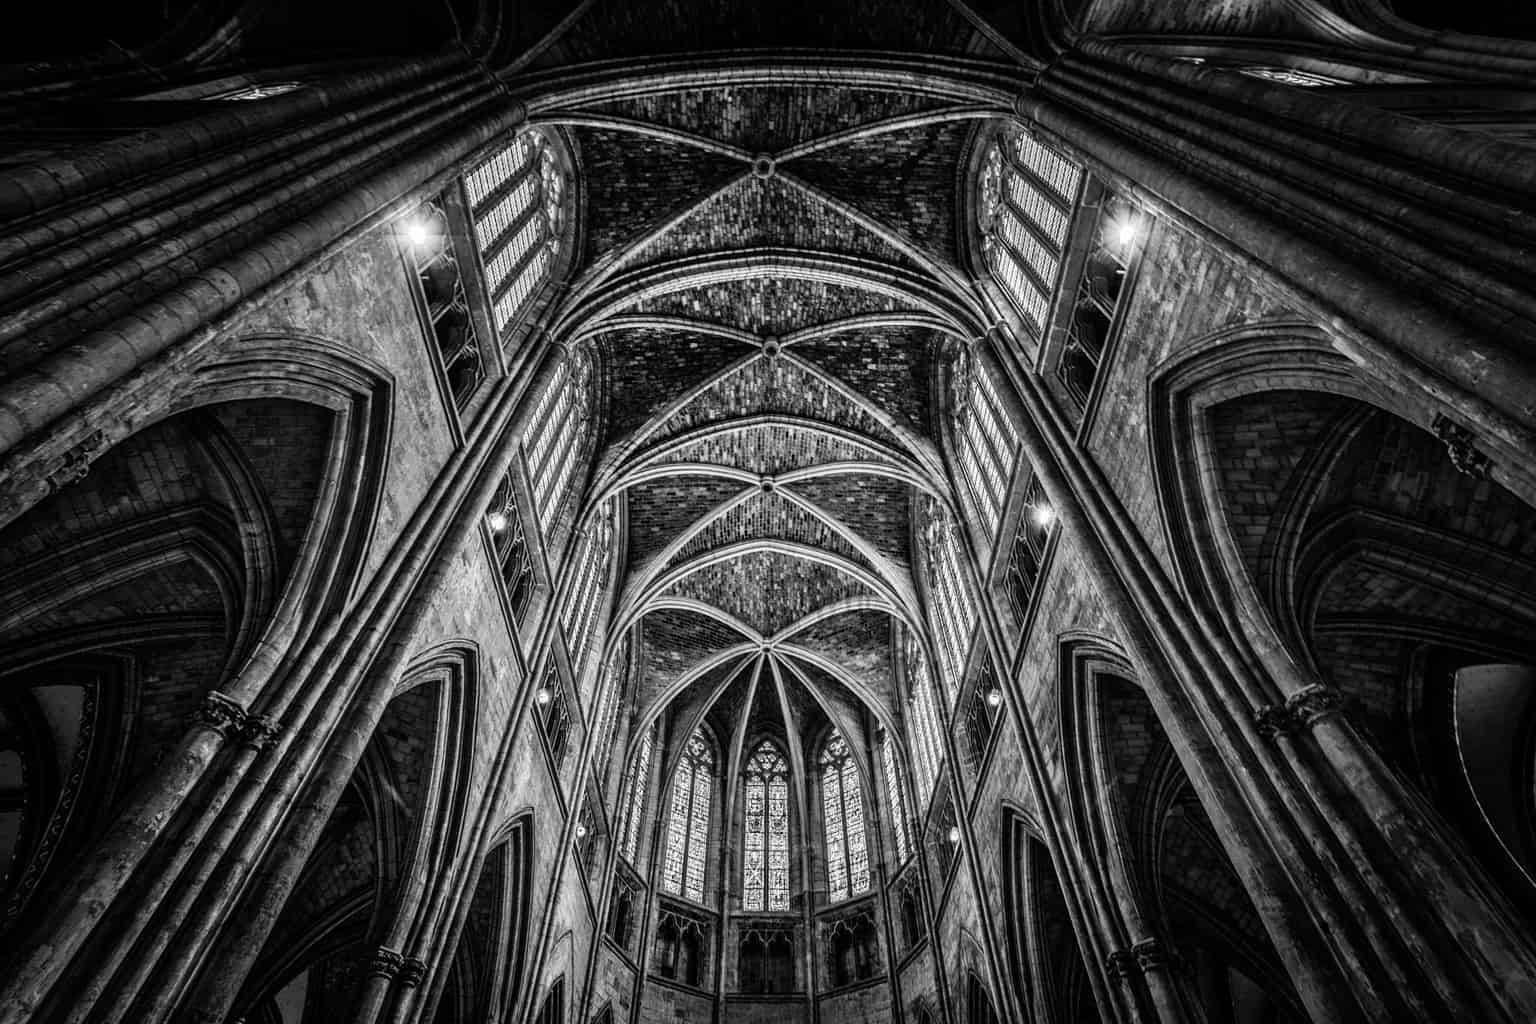 The spectacular interior of Bordeaux Cathedral